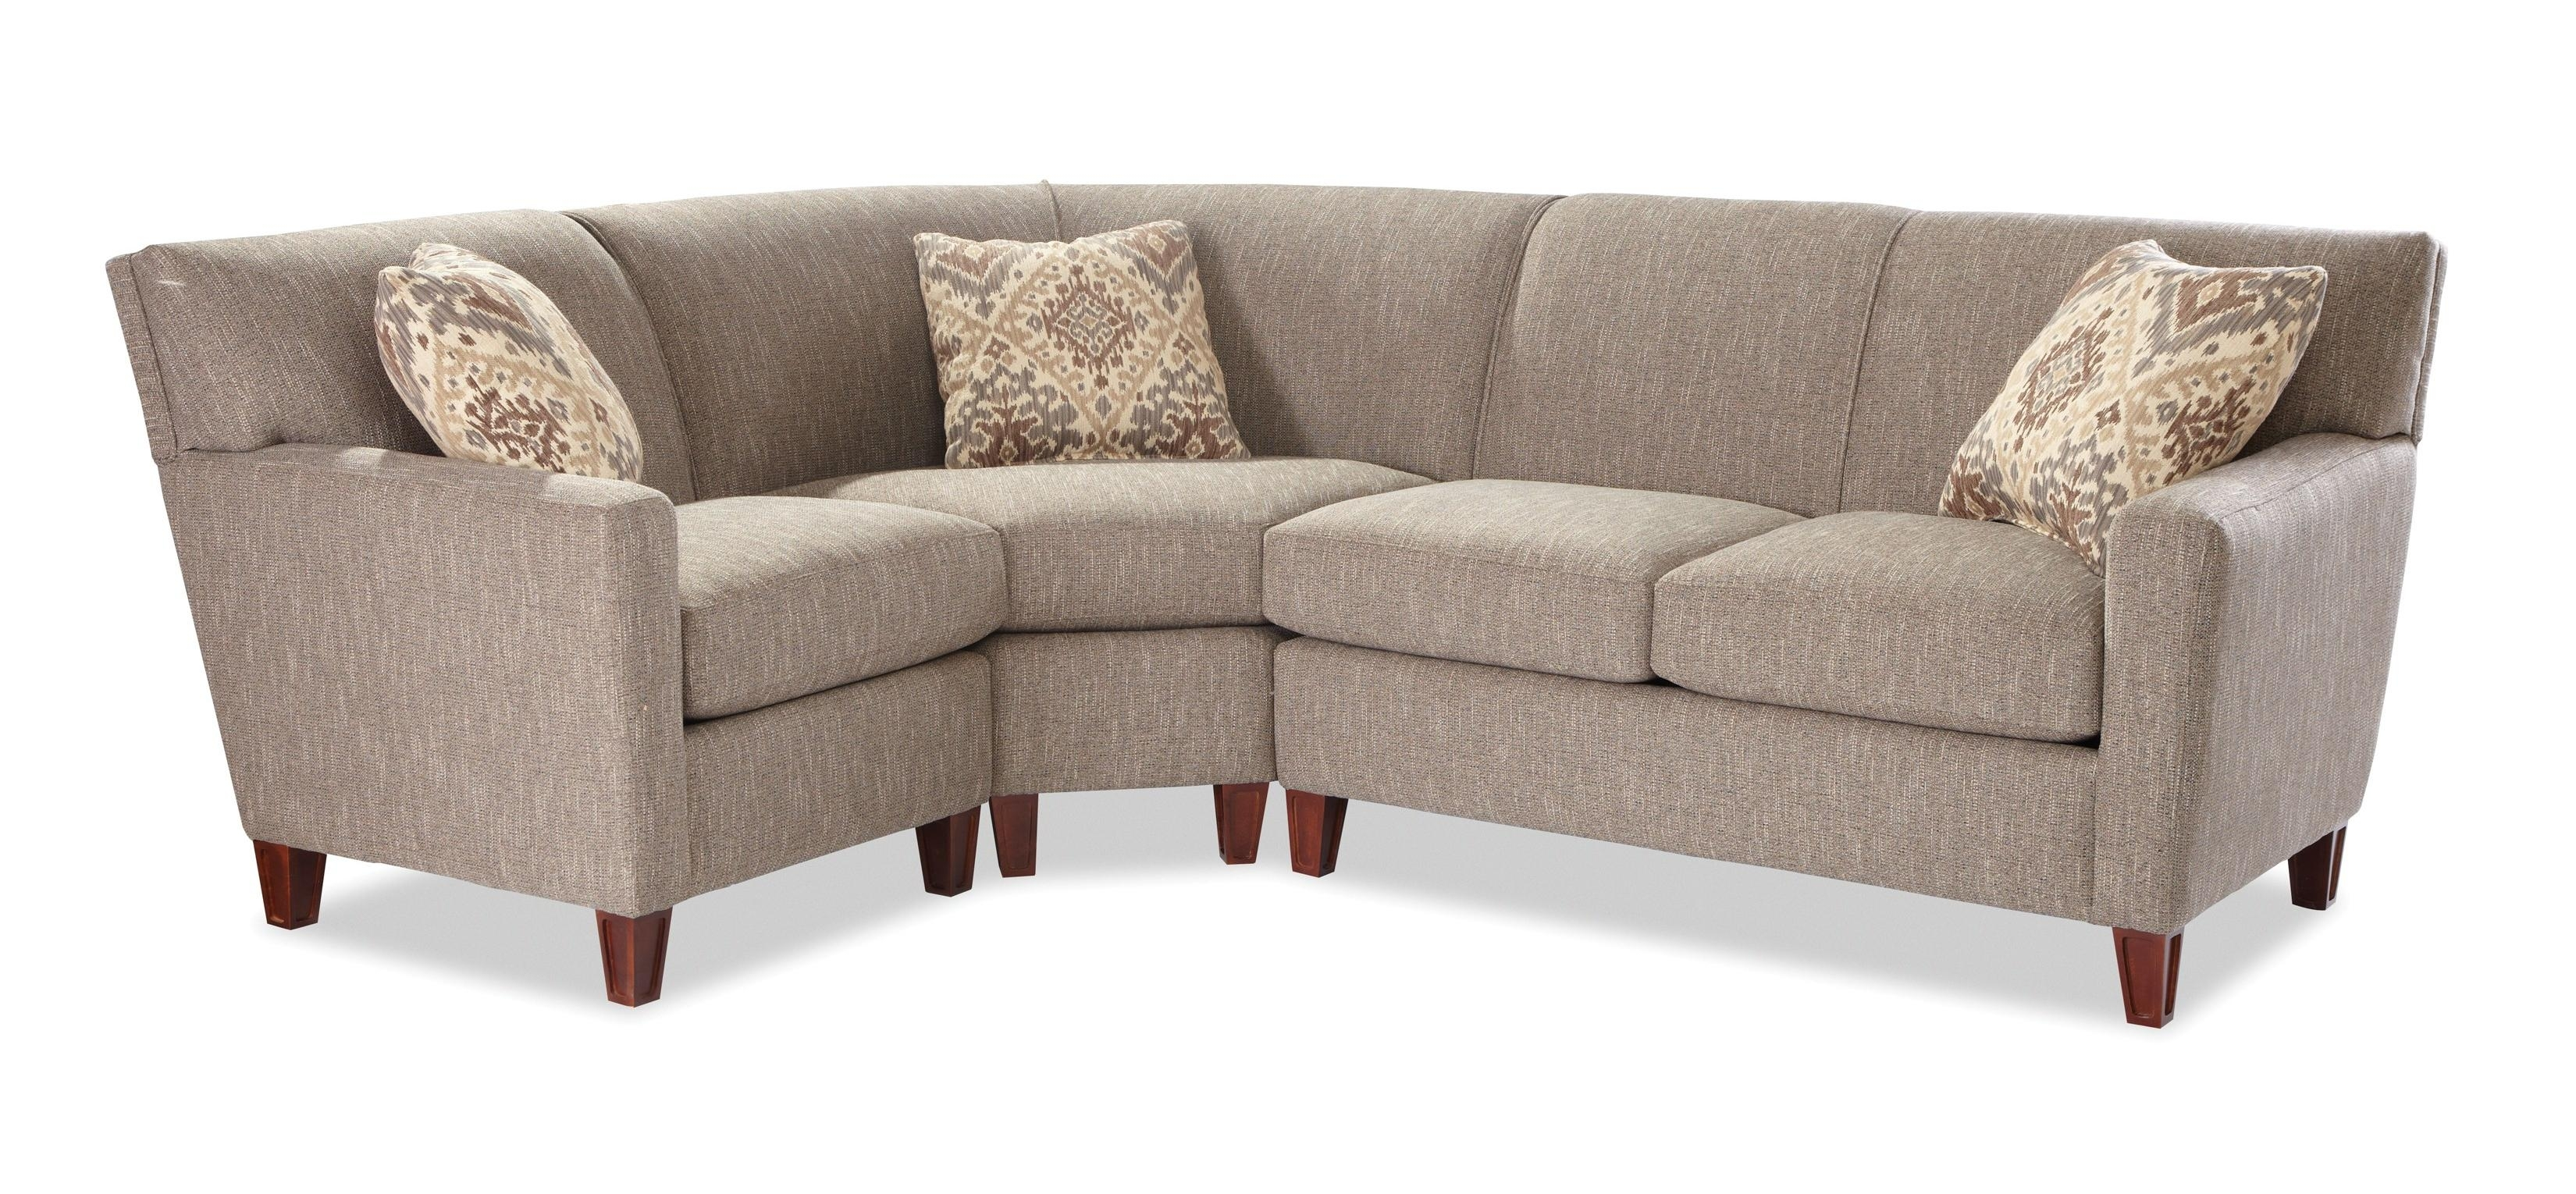 Craftmaster 7864 Three Piece Sectional Sofa With Raf Loveseat Within Josephine 2 Piece Sectionals With Laf Sofa (View 19 of 25)